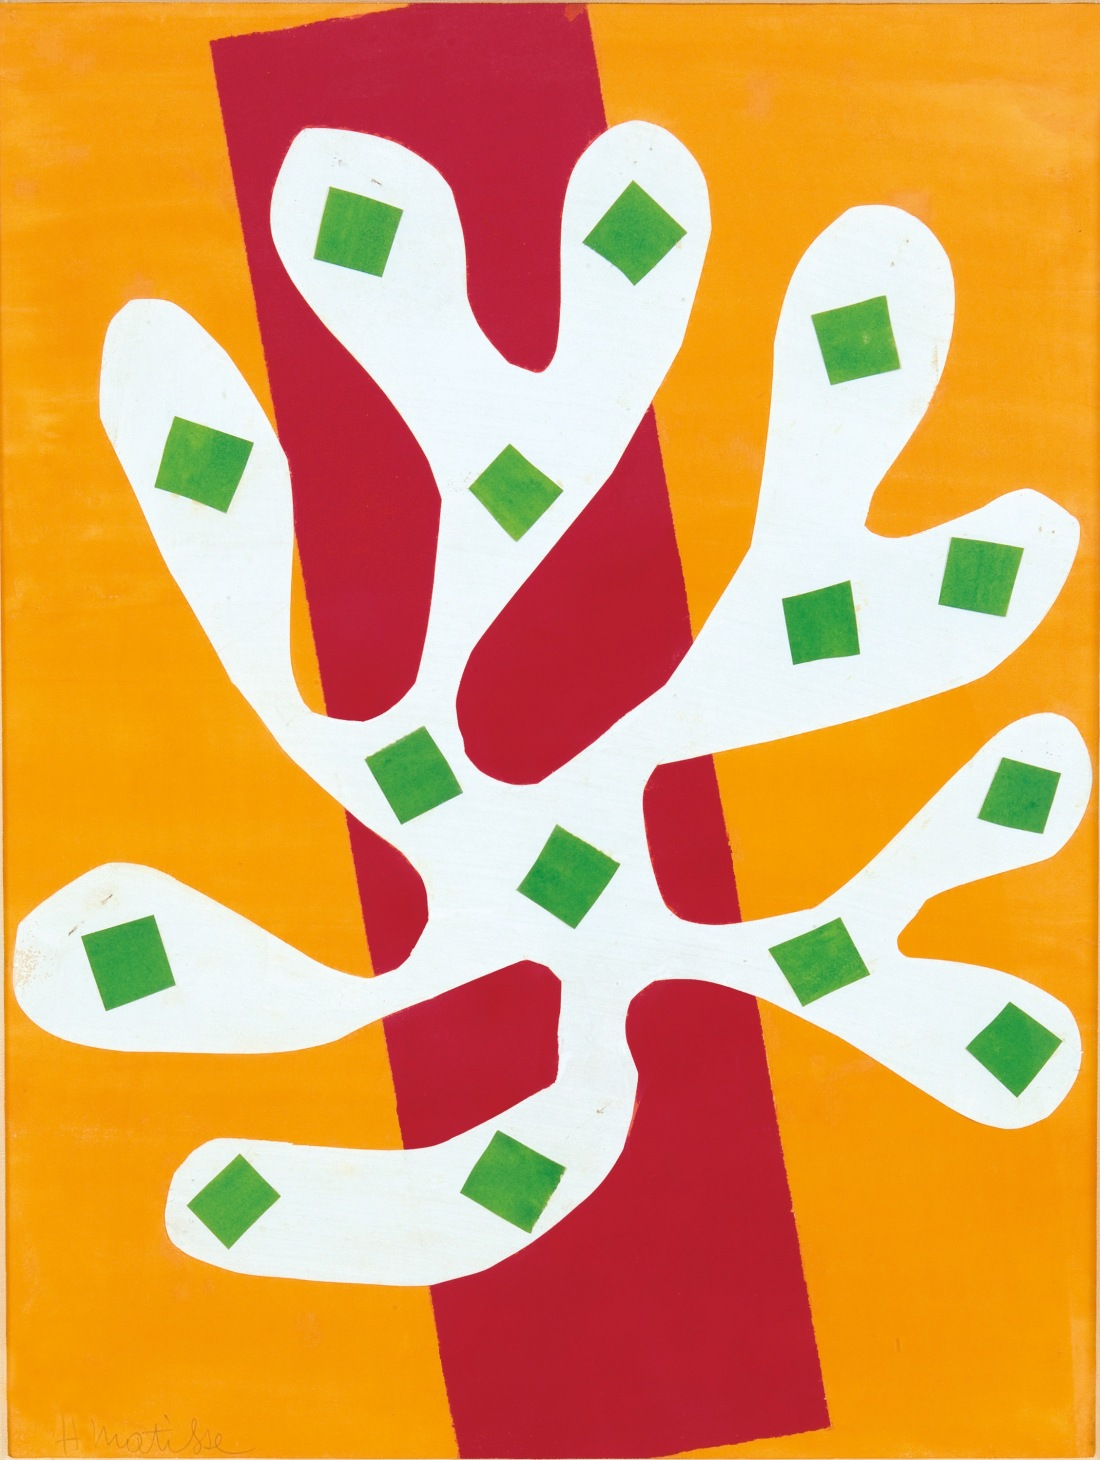 Henri Matisse, White Alga on Orange and Red Background (Algue blanche sur fond orange et rouge), 1947.